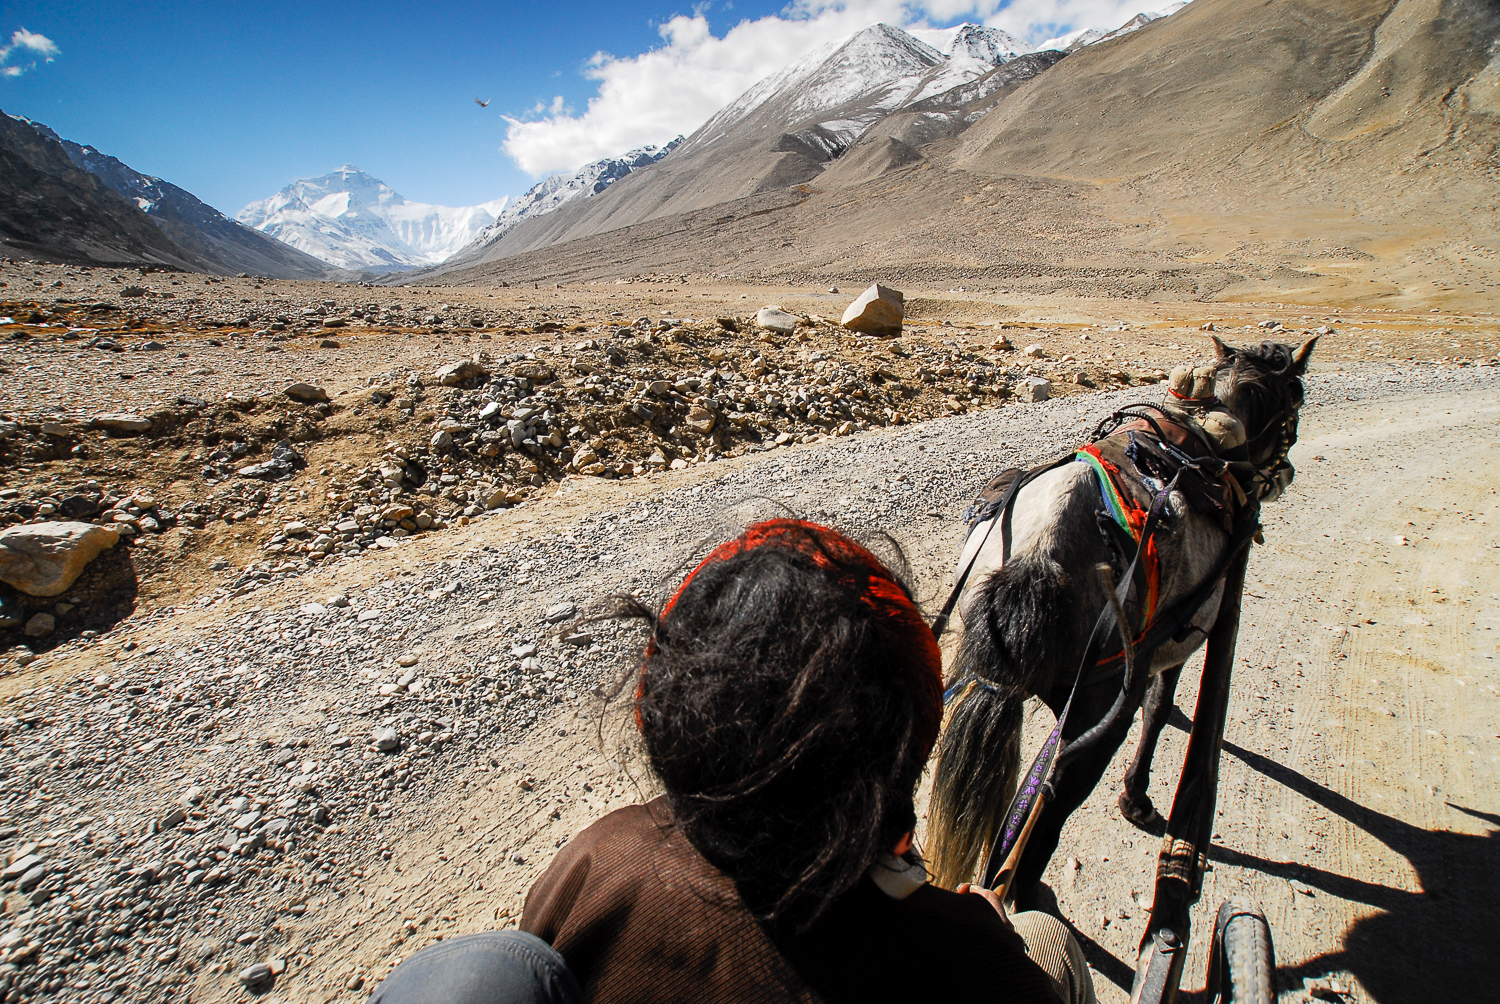 Taking a horse-drawn cart the final 4km or 2.5 mi to Everest Base Camp.